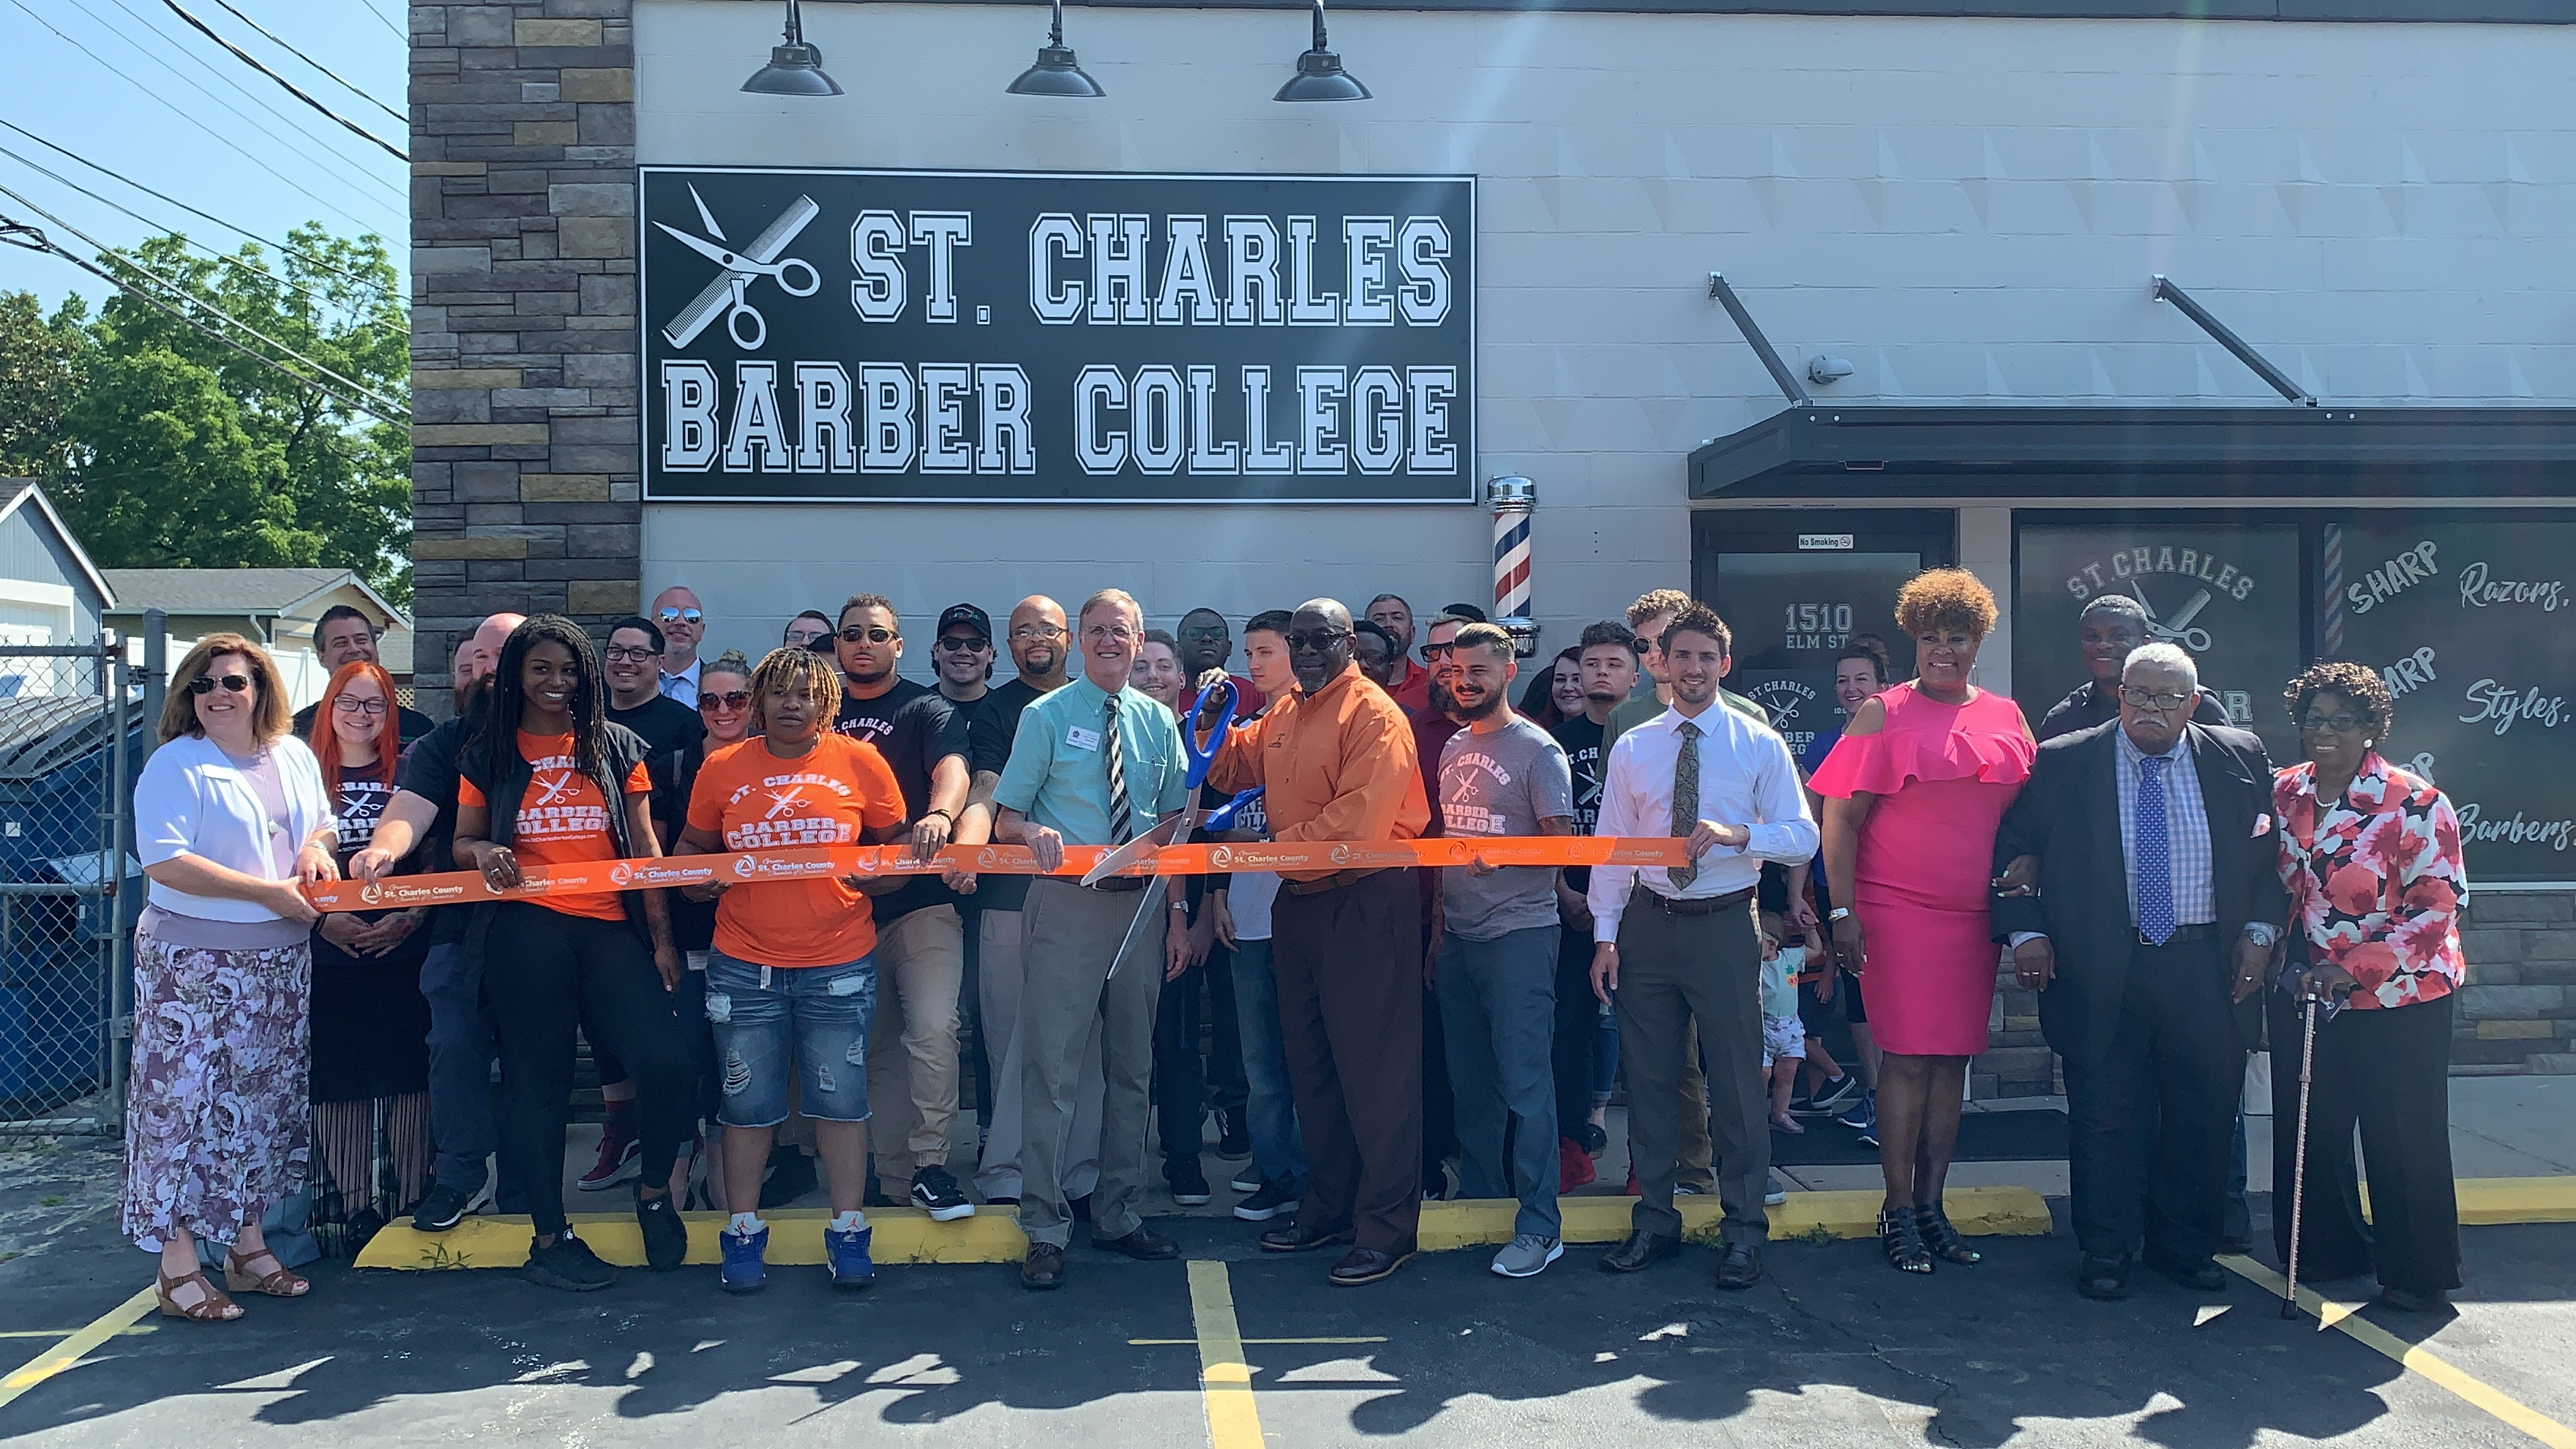 St. Charles Barber College Celebrates New Location with Ribbon Cutting